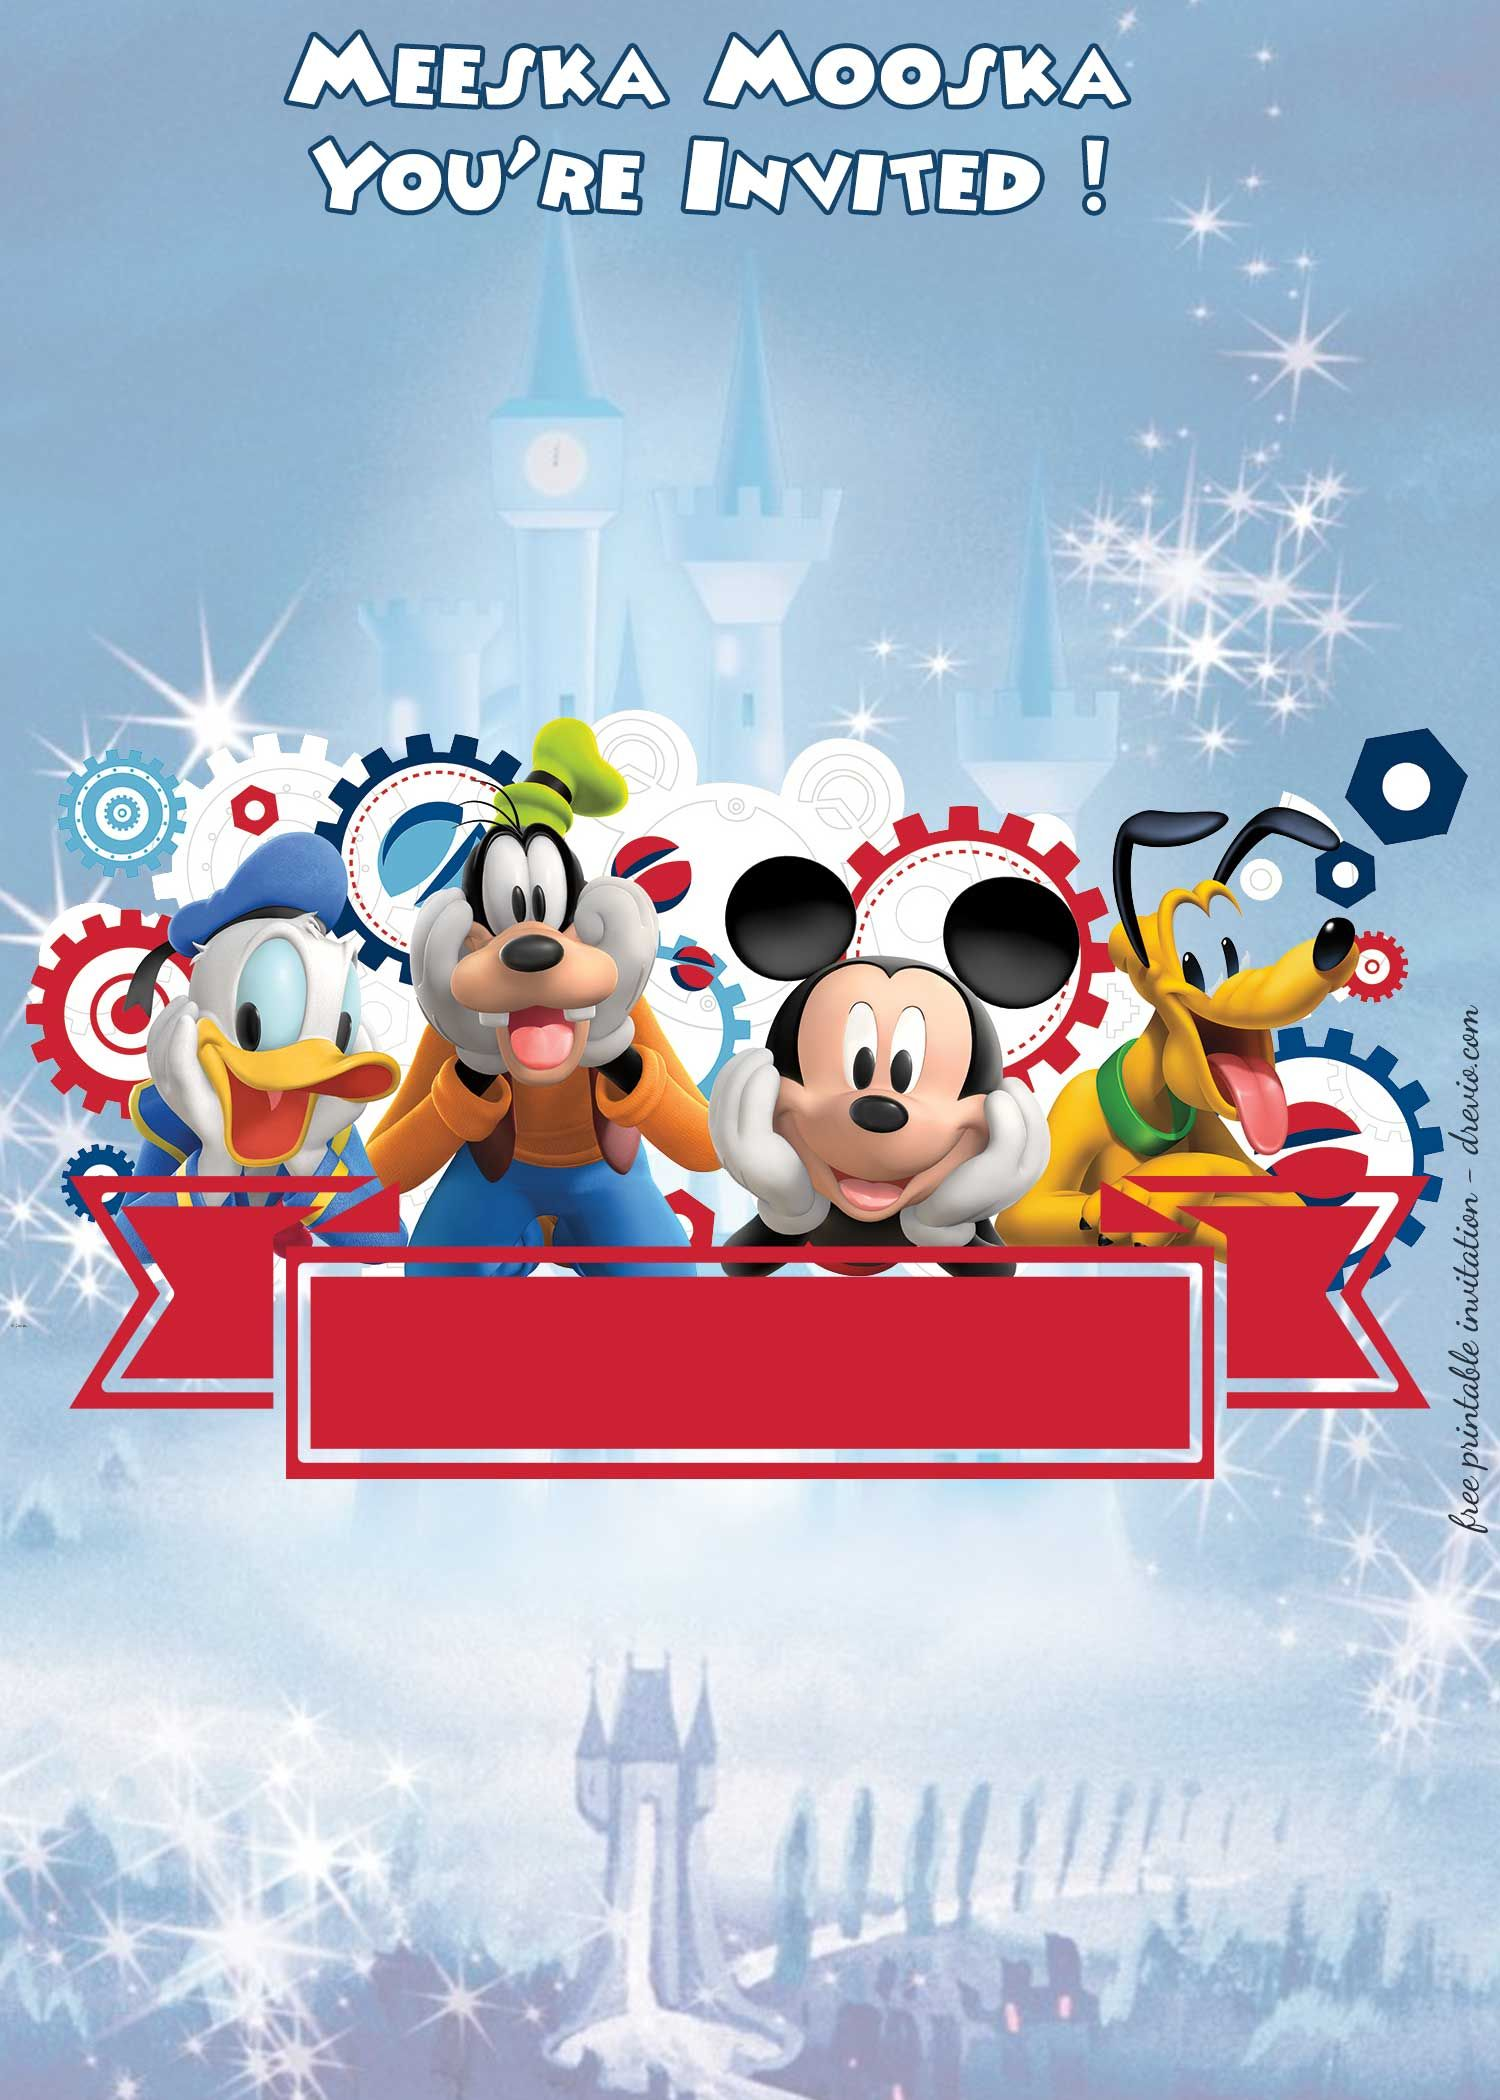 Free mickey mouse clubhouse disney castle invitation templates download now free mickey mouse clubhouse disney castle invitation templates maxwellsz